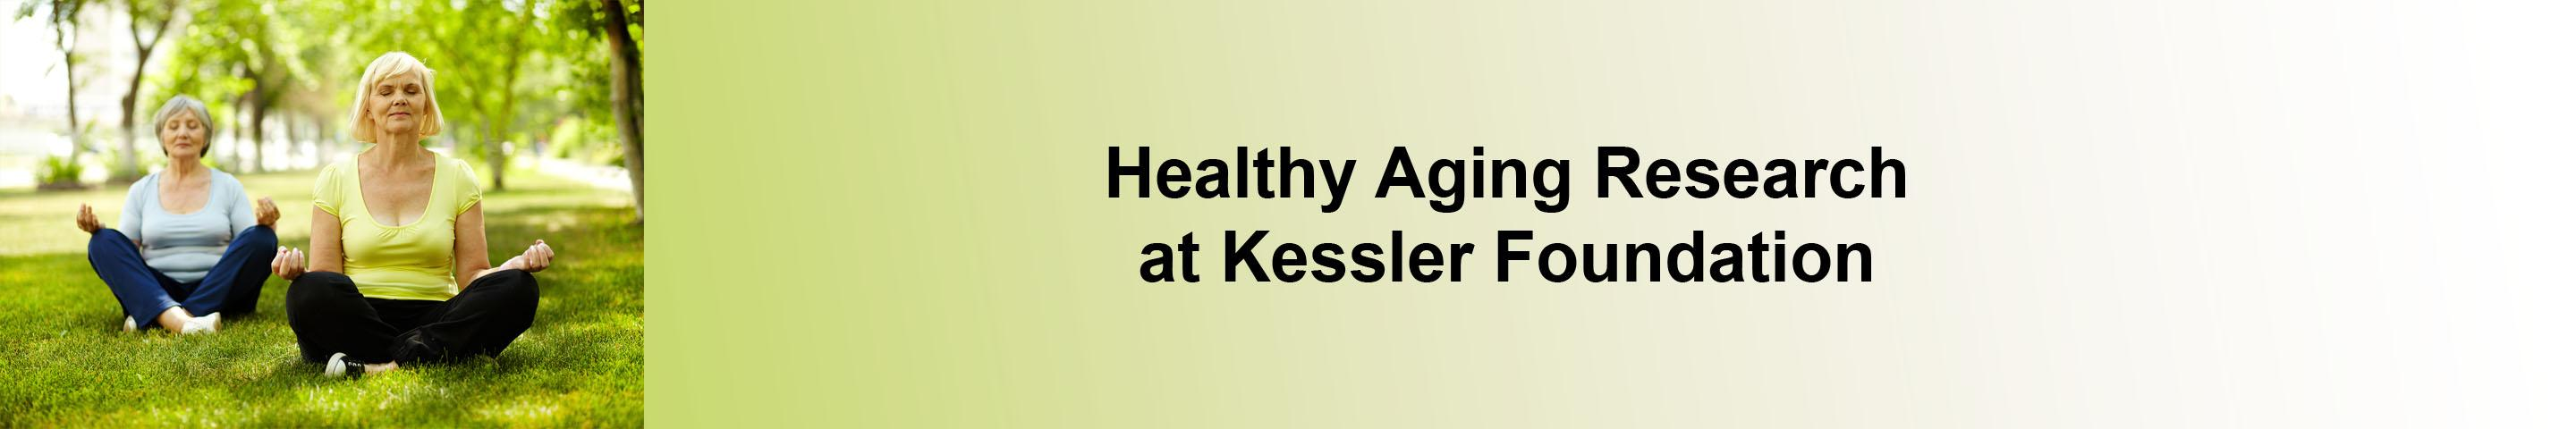 Healthy aging research banner